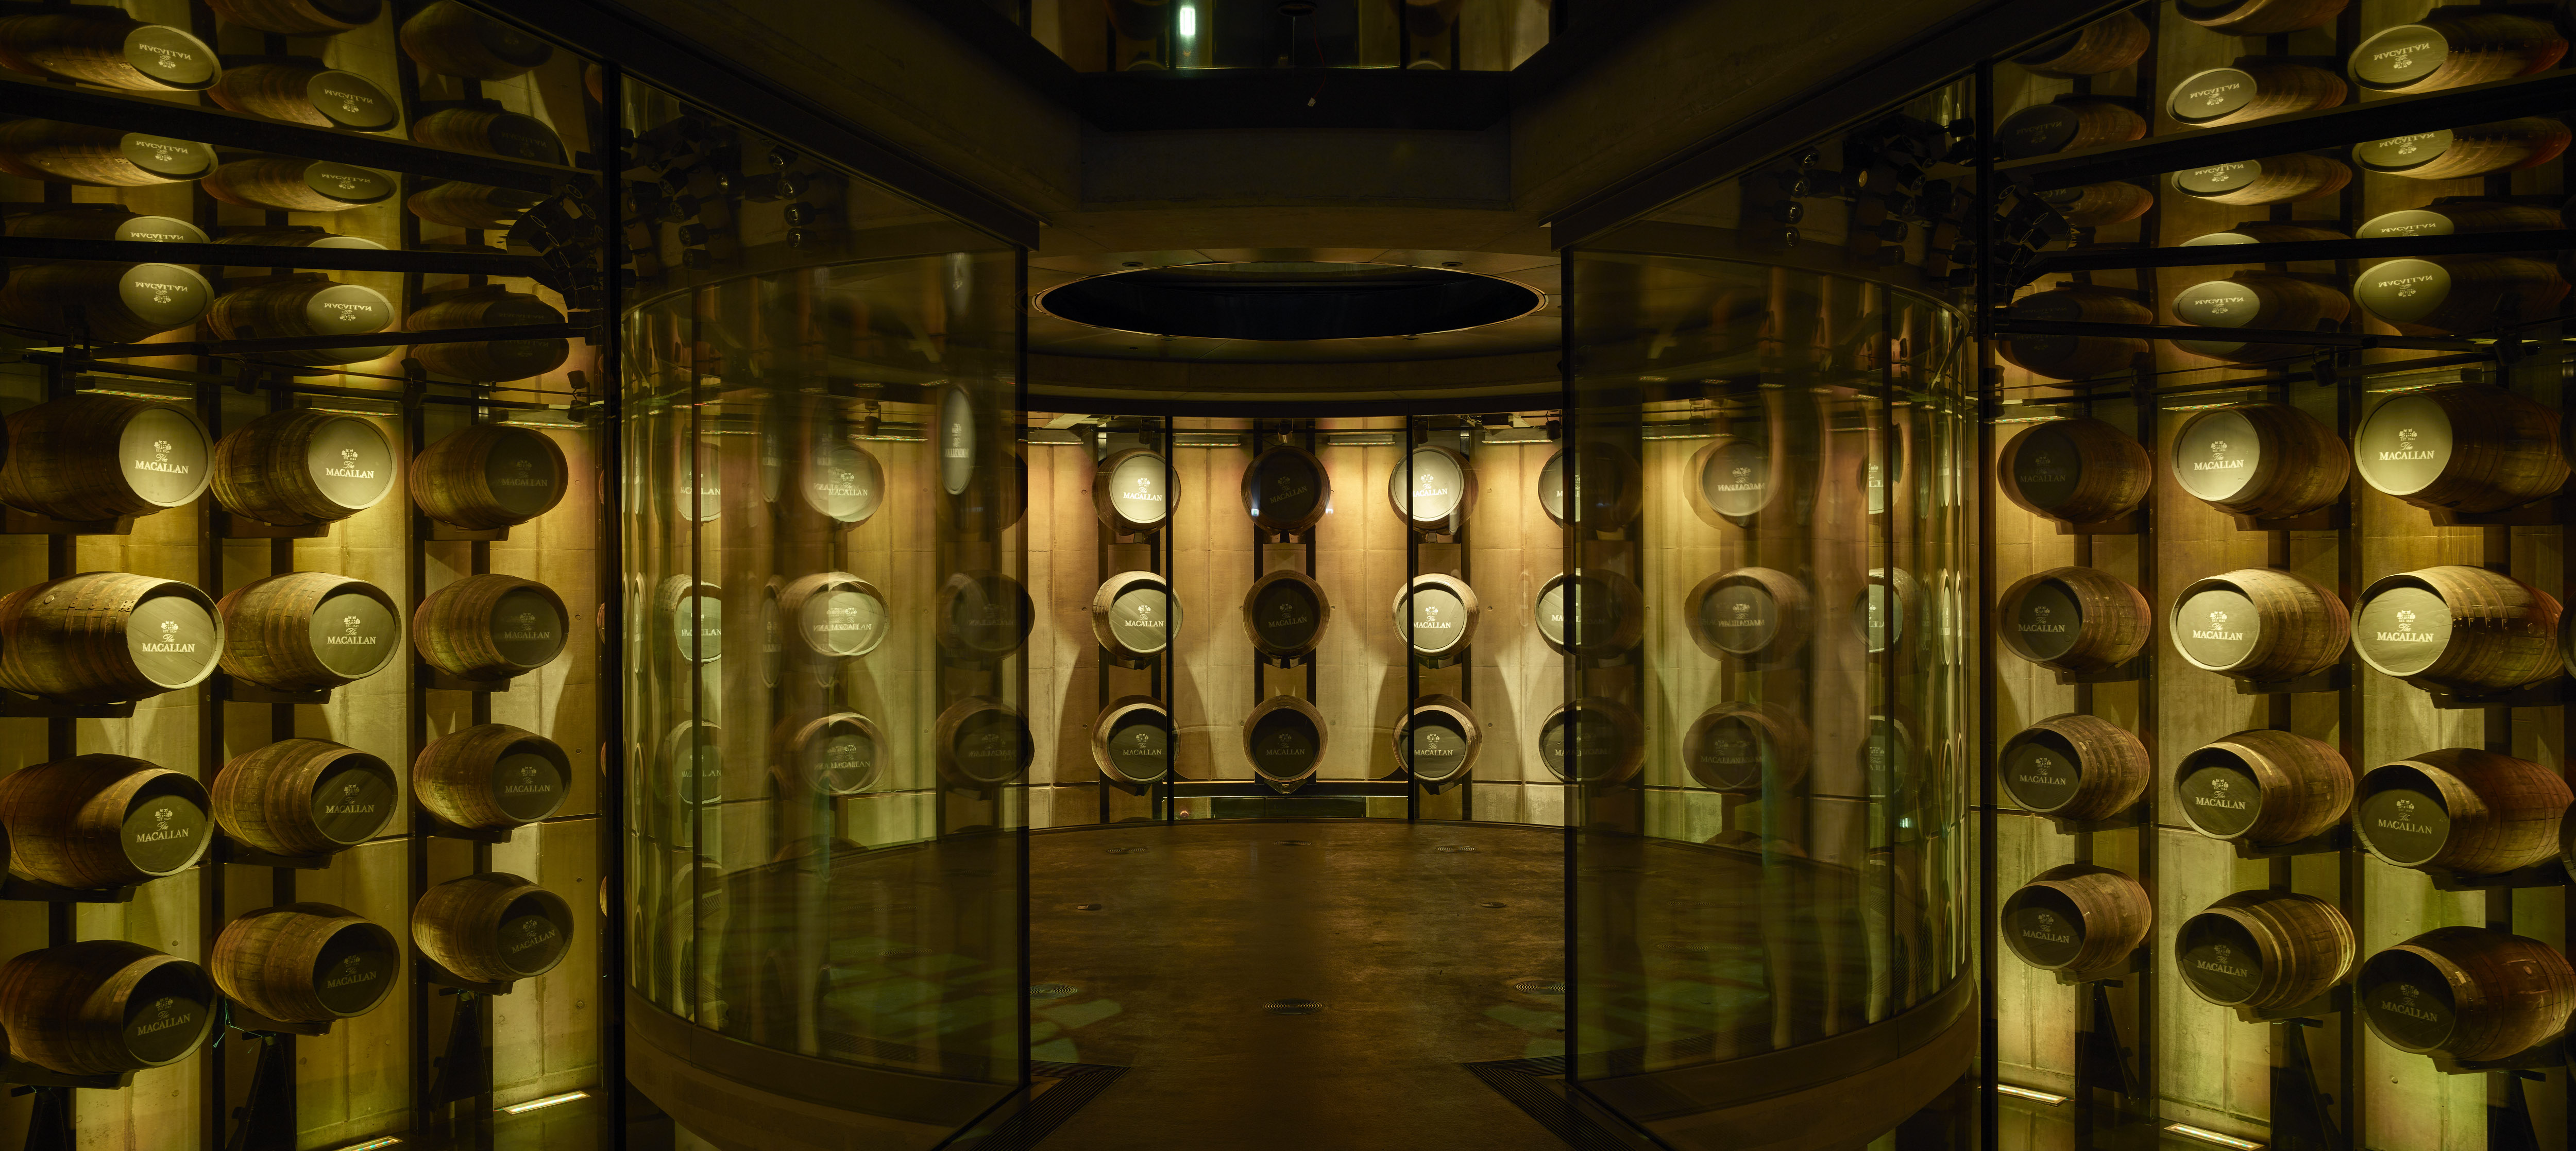 The Macallan distillery - whisky maturation